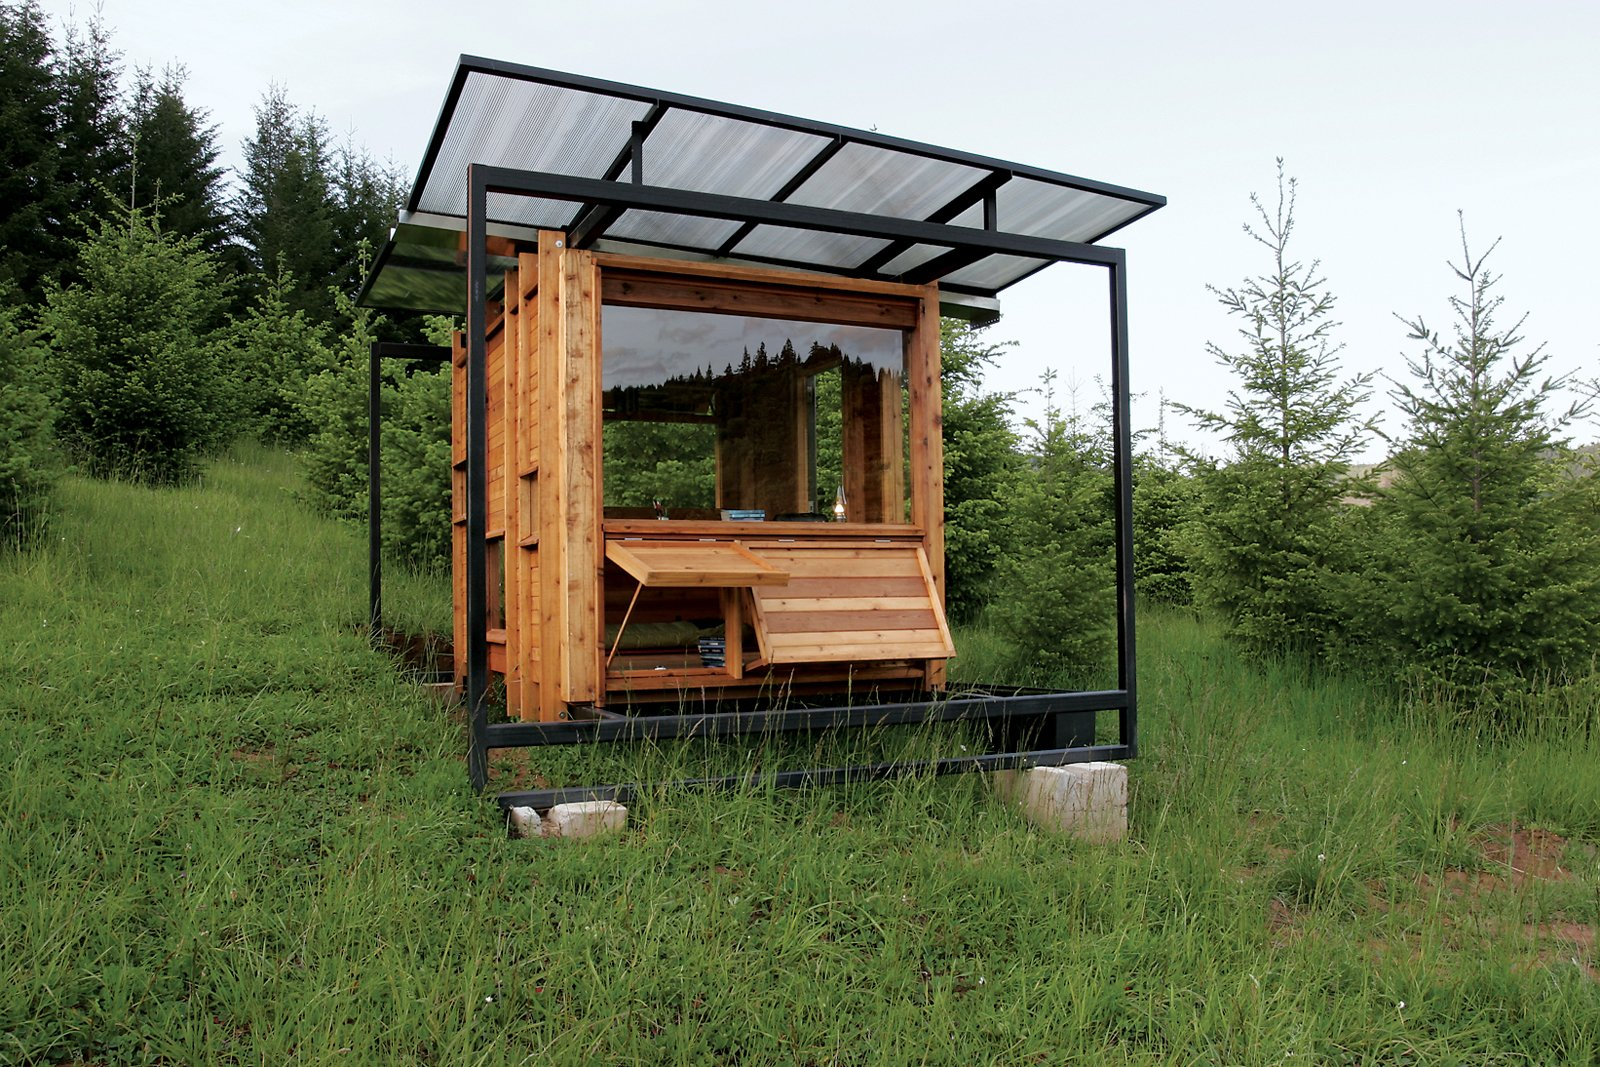 "Erin Moore of FLOAT Architectural Research and Design, based in Tucson, Arizona, designed a 70-square-foot writer's retreat in Wren, Oregon, for her mother, Kathleen Dean Moore, a nature writer and professor of philosophy at nearby Oregon State University. The elder Moore wanted a small studio in which to work and observe the delicate wetland ecosystem on the banks of the Marys River. Enlisting her daughter's design expertise, her professor husband's carpentry savoir faire, the aid of friends, and a front loader, Kathleen and her crew erected the structure in September 2007. Photo by Gary Tarleton. Totally off the grid—–Kathleen forgoes the computer and writes by hand when there—–the Watershed was designed to tread as lightly on the fragile ecosystem as the wild turkeys and Western pond turtles that live nearby. "" Tagged: Exterior, Cabin Building Type, Tiny Home Building Type, Wood Siding Material, Flat RoofLine, and Glass Siding Material.  Photo 98 of 101 in 101 Best Modern Cabins from Modern Off-the-Grid Retreat in Oregon"